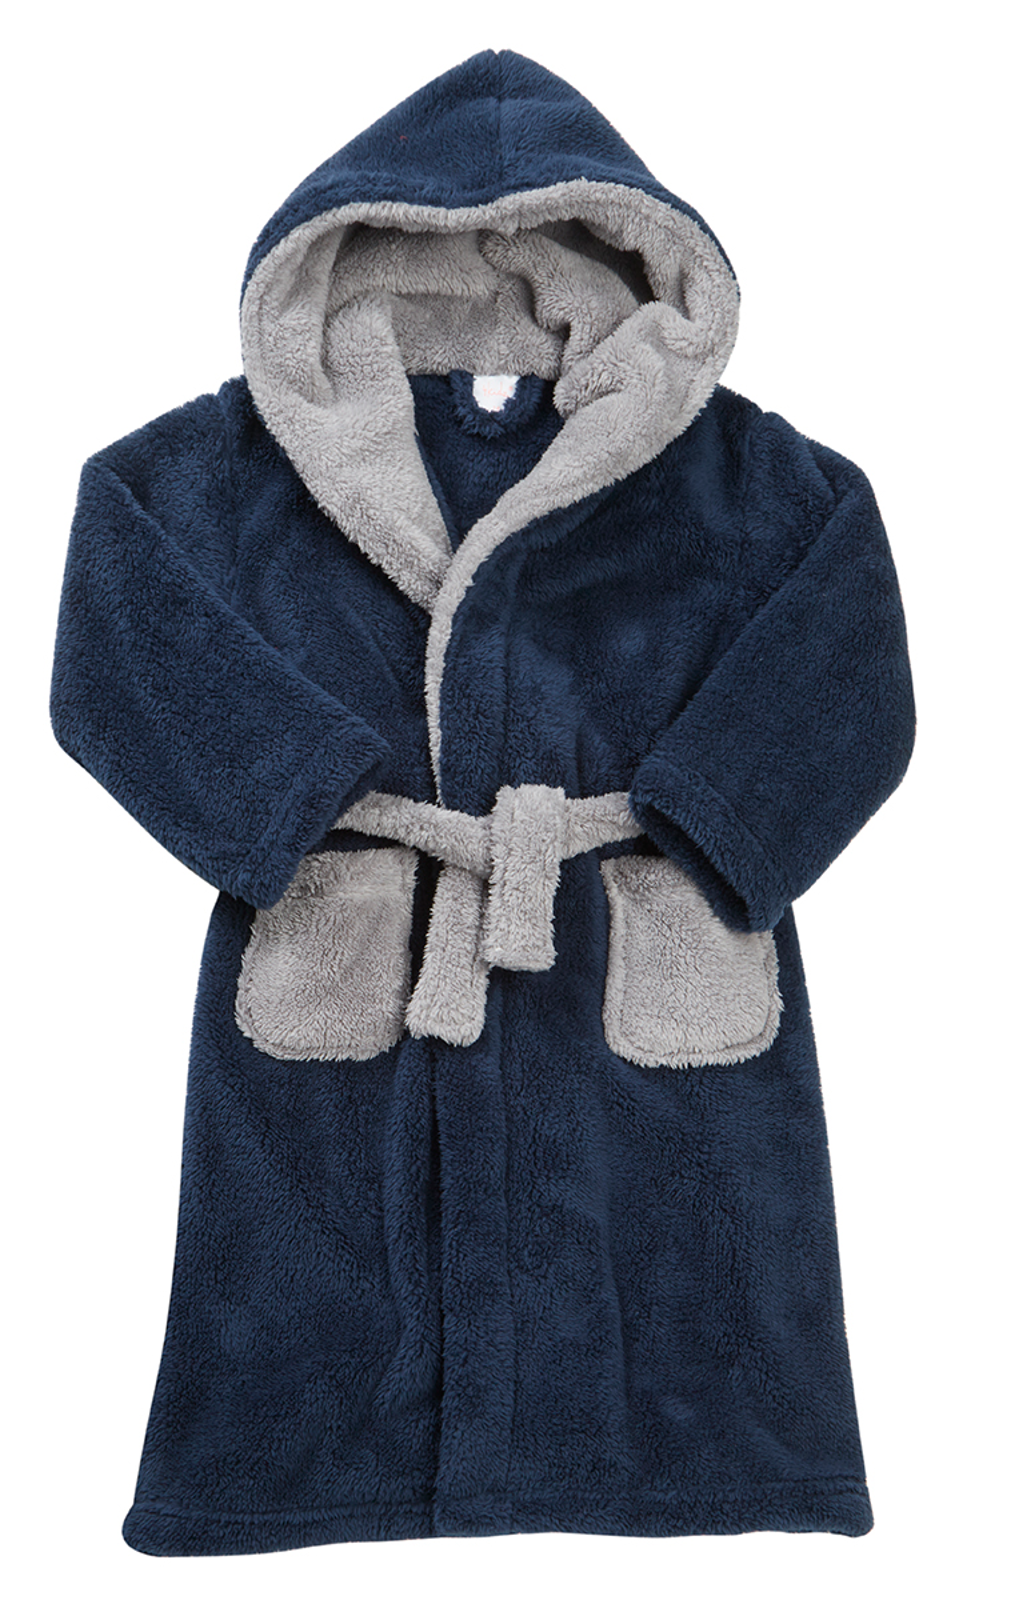 Mini Kidz Older Boy Dressing Gown Plush Fleece Feel Blue Tartan Black Stripe. £ - £ Prime. 5 out of 5 stars 5. Unicorn Bathrobe Dressing Gown Soft Fluffy Cosy Kids Pink Purple Blue Girls Boys Unisex Kigurumi Sleepwear Costume £ - £ Prime. 4 out of 5 stars 1.